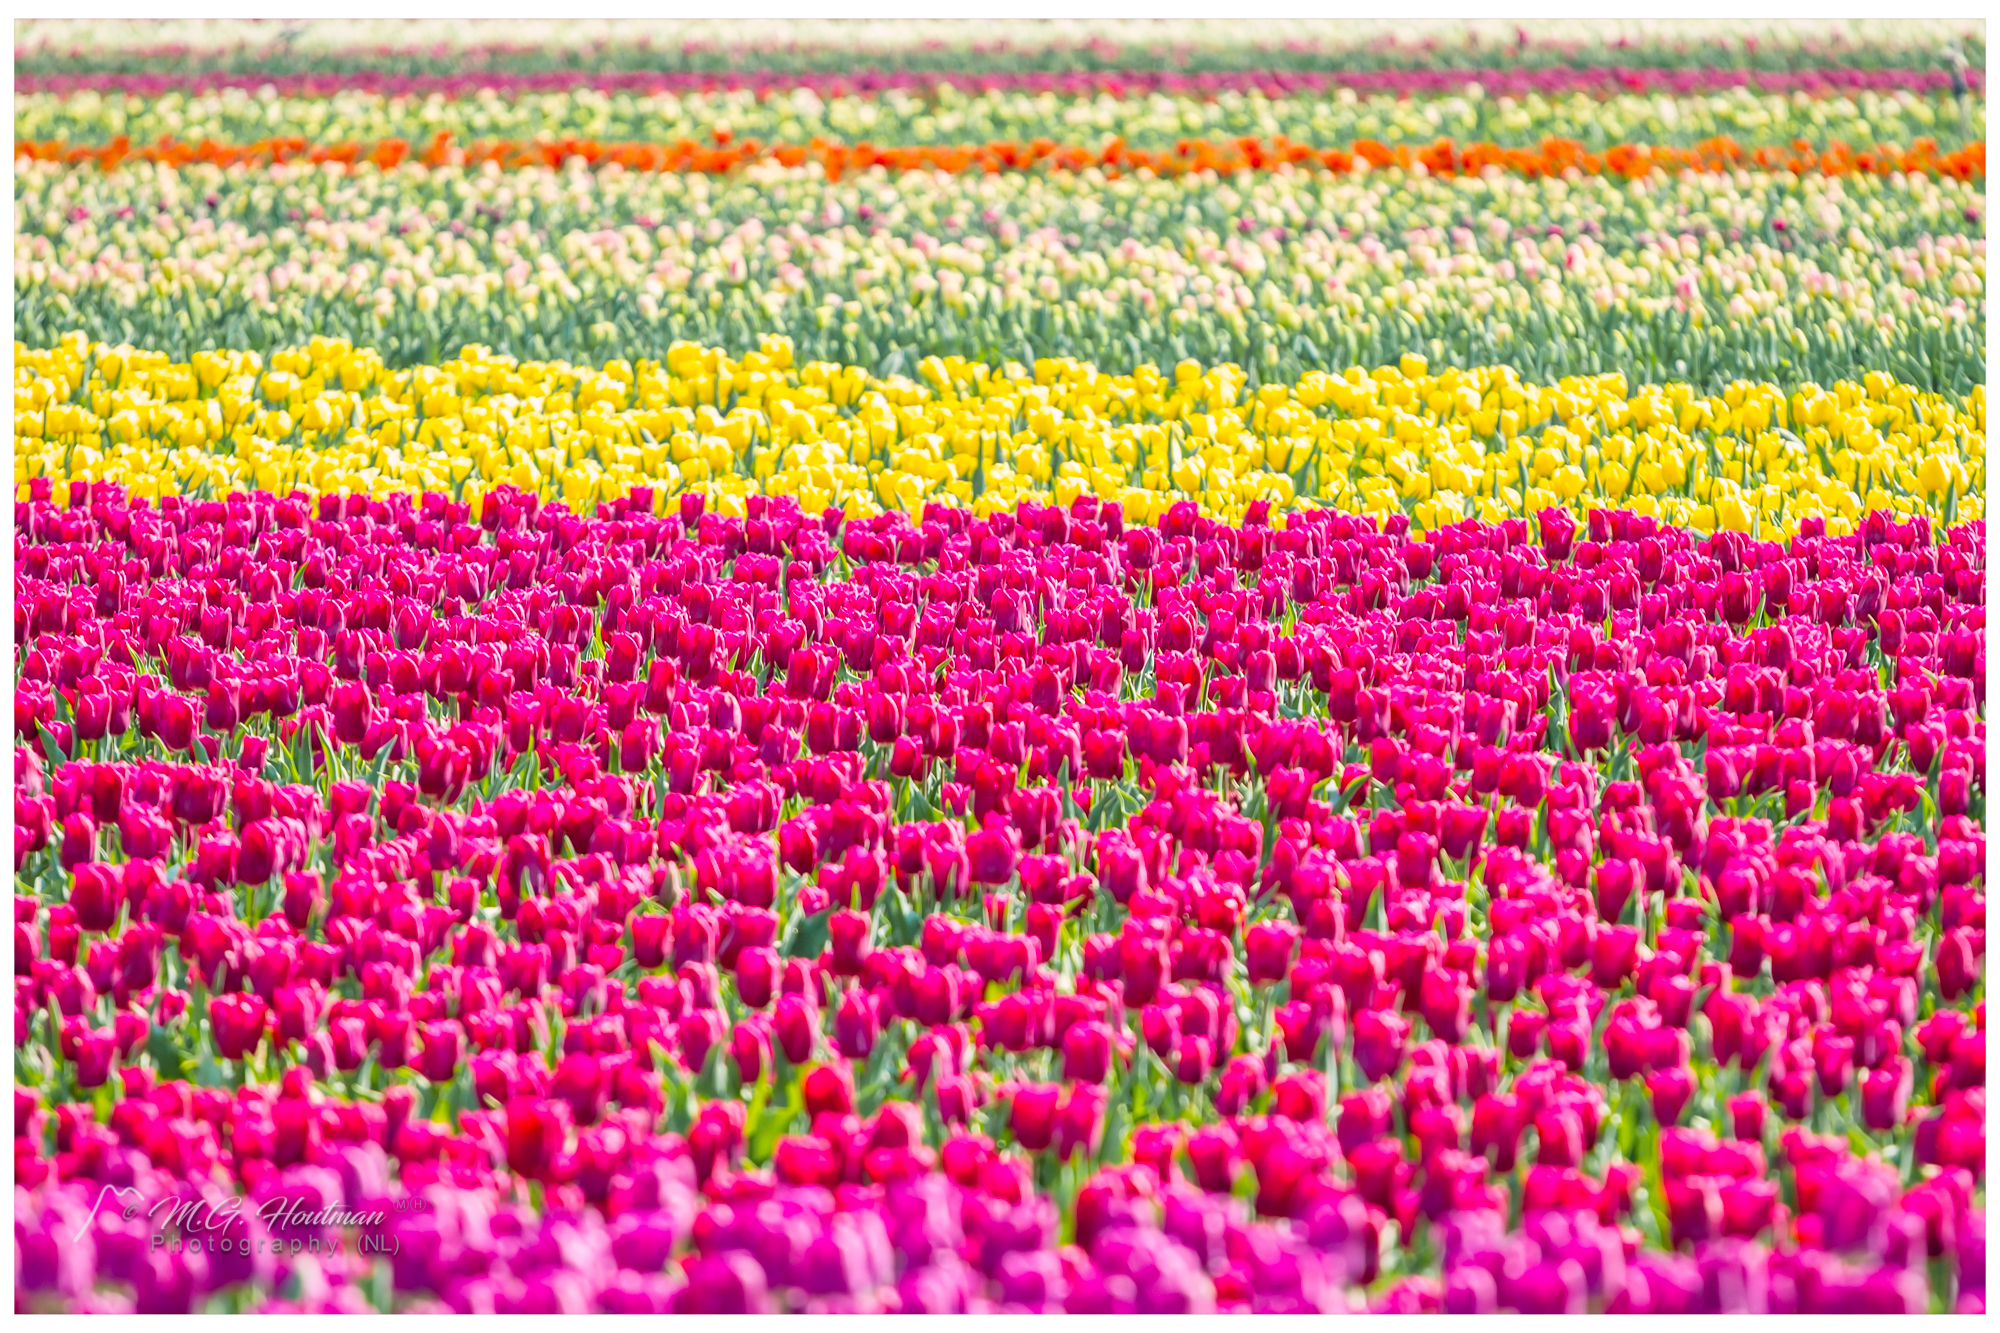 Not yet cutted tulips